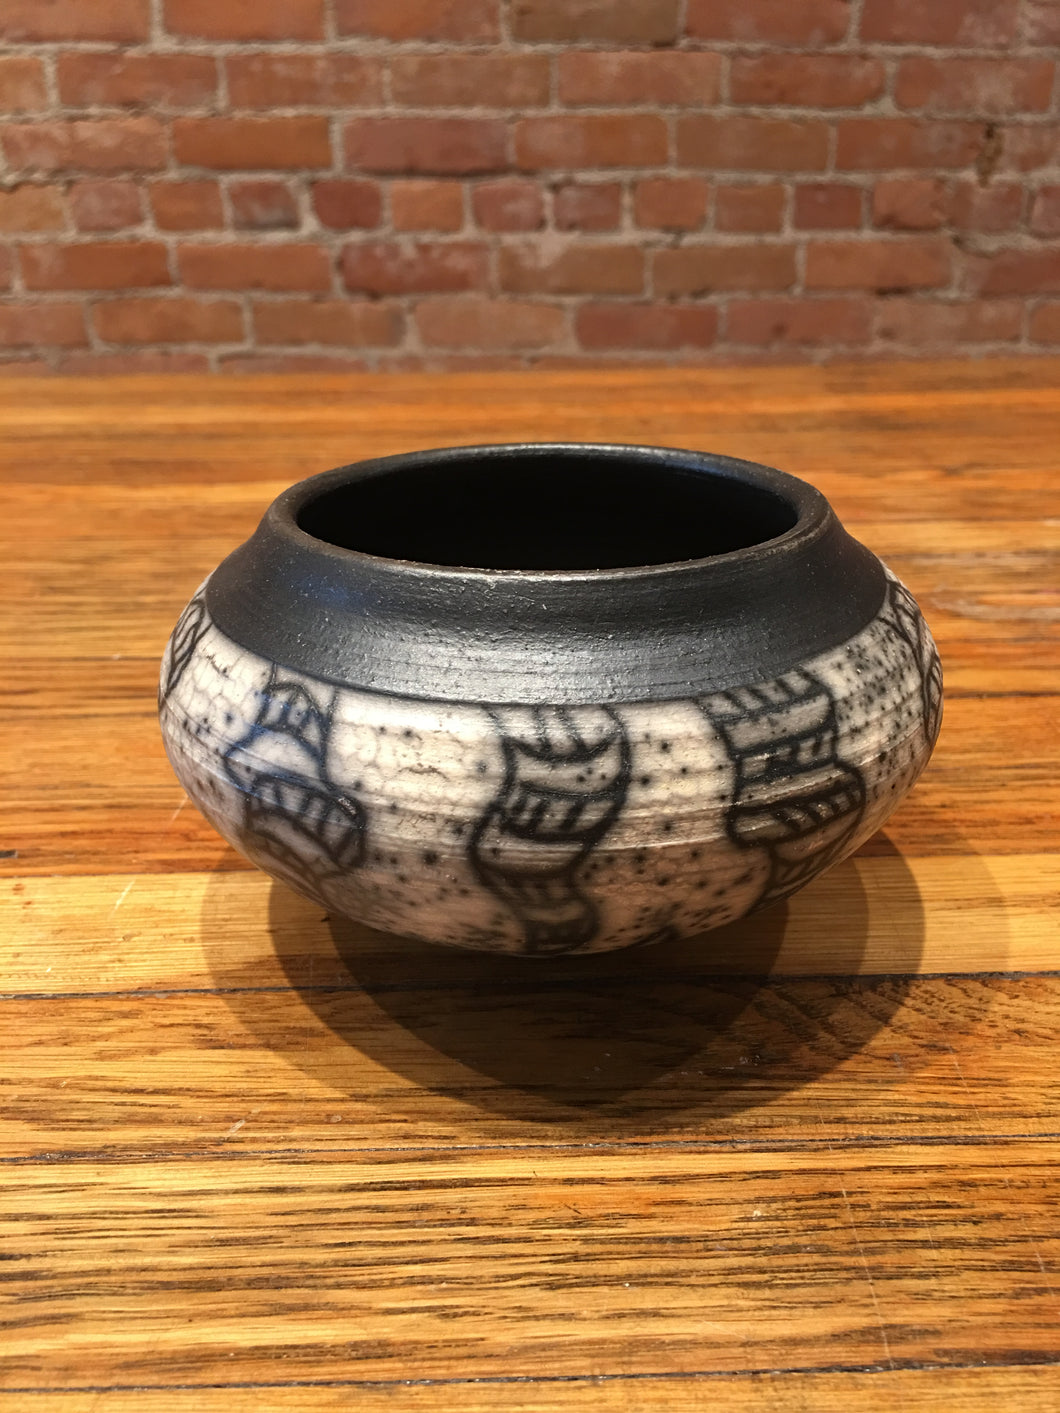 Small Black Design Vase by Nobel Schuler